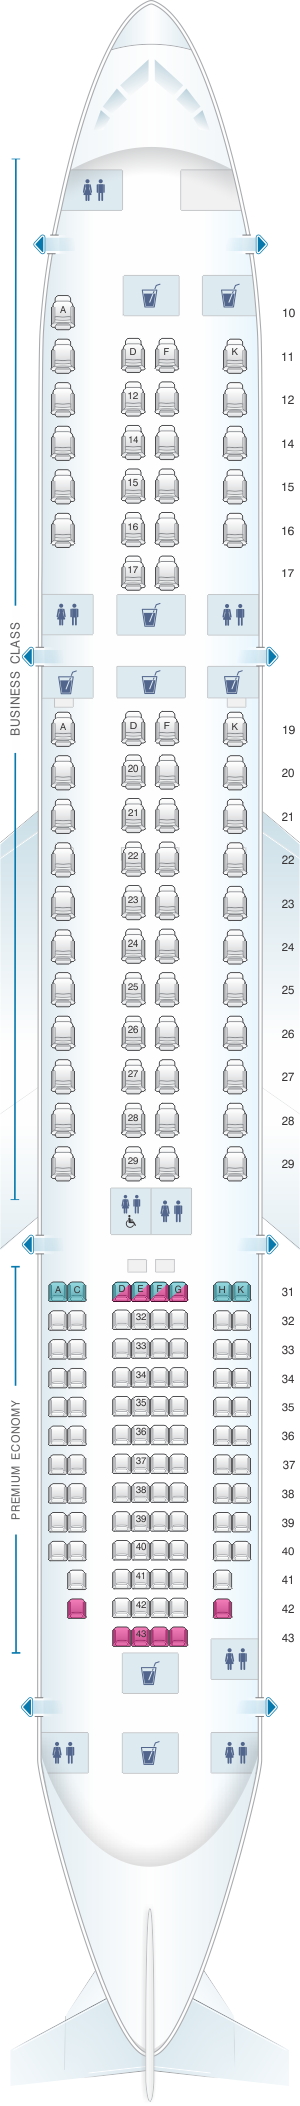 Seat map for Singapore Airlines Airbus A350 900 config.3